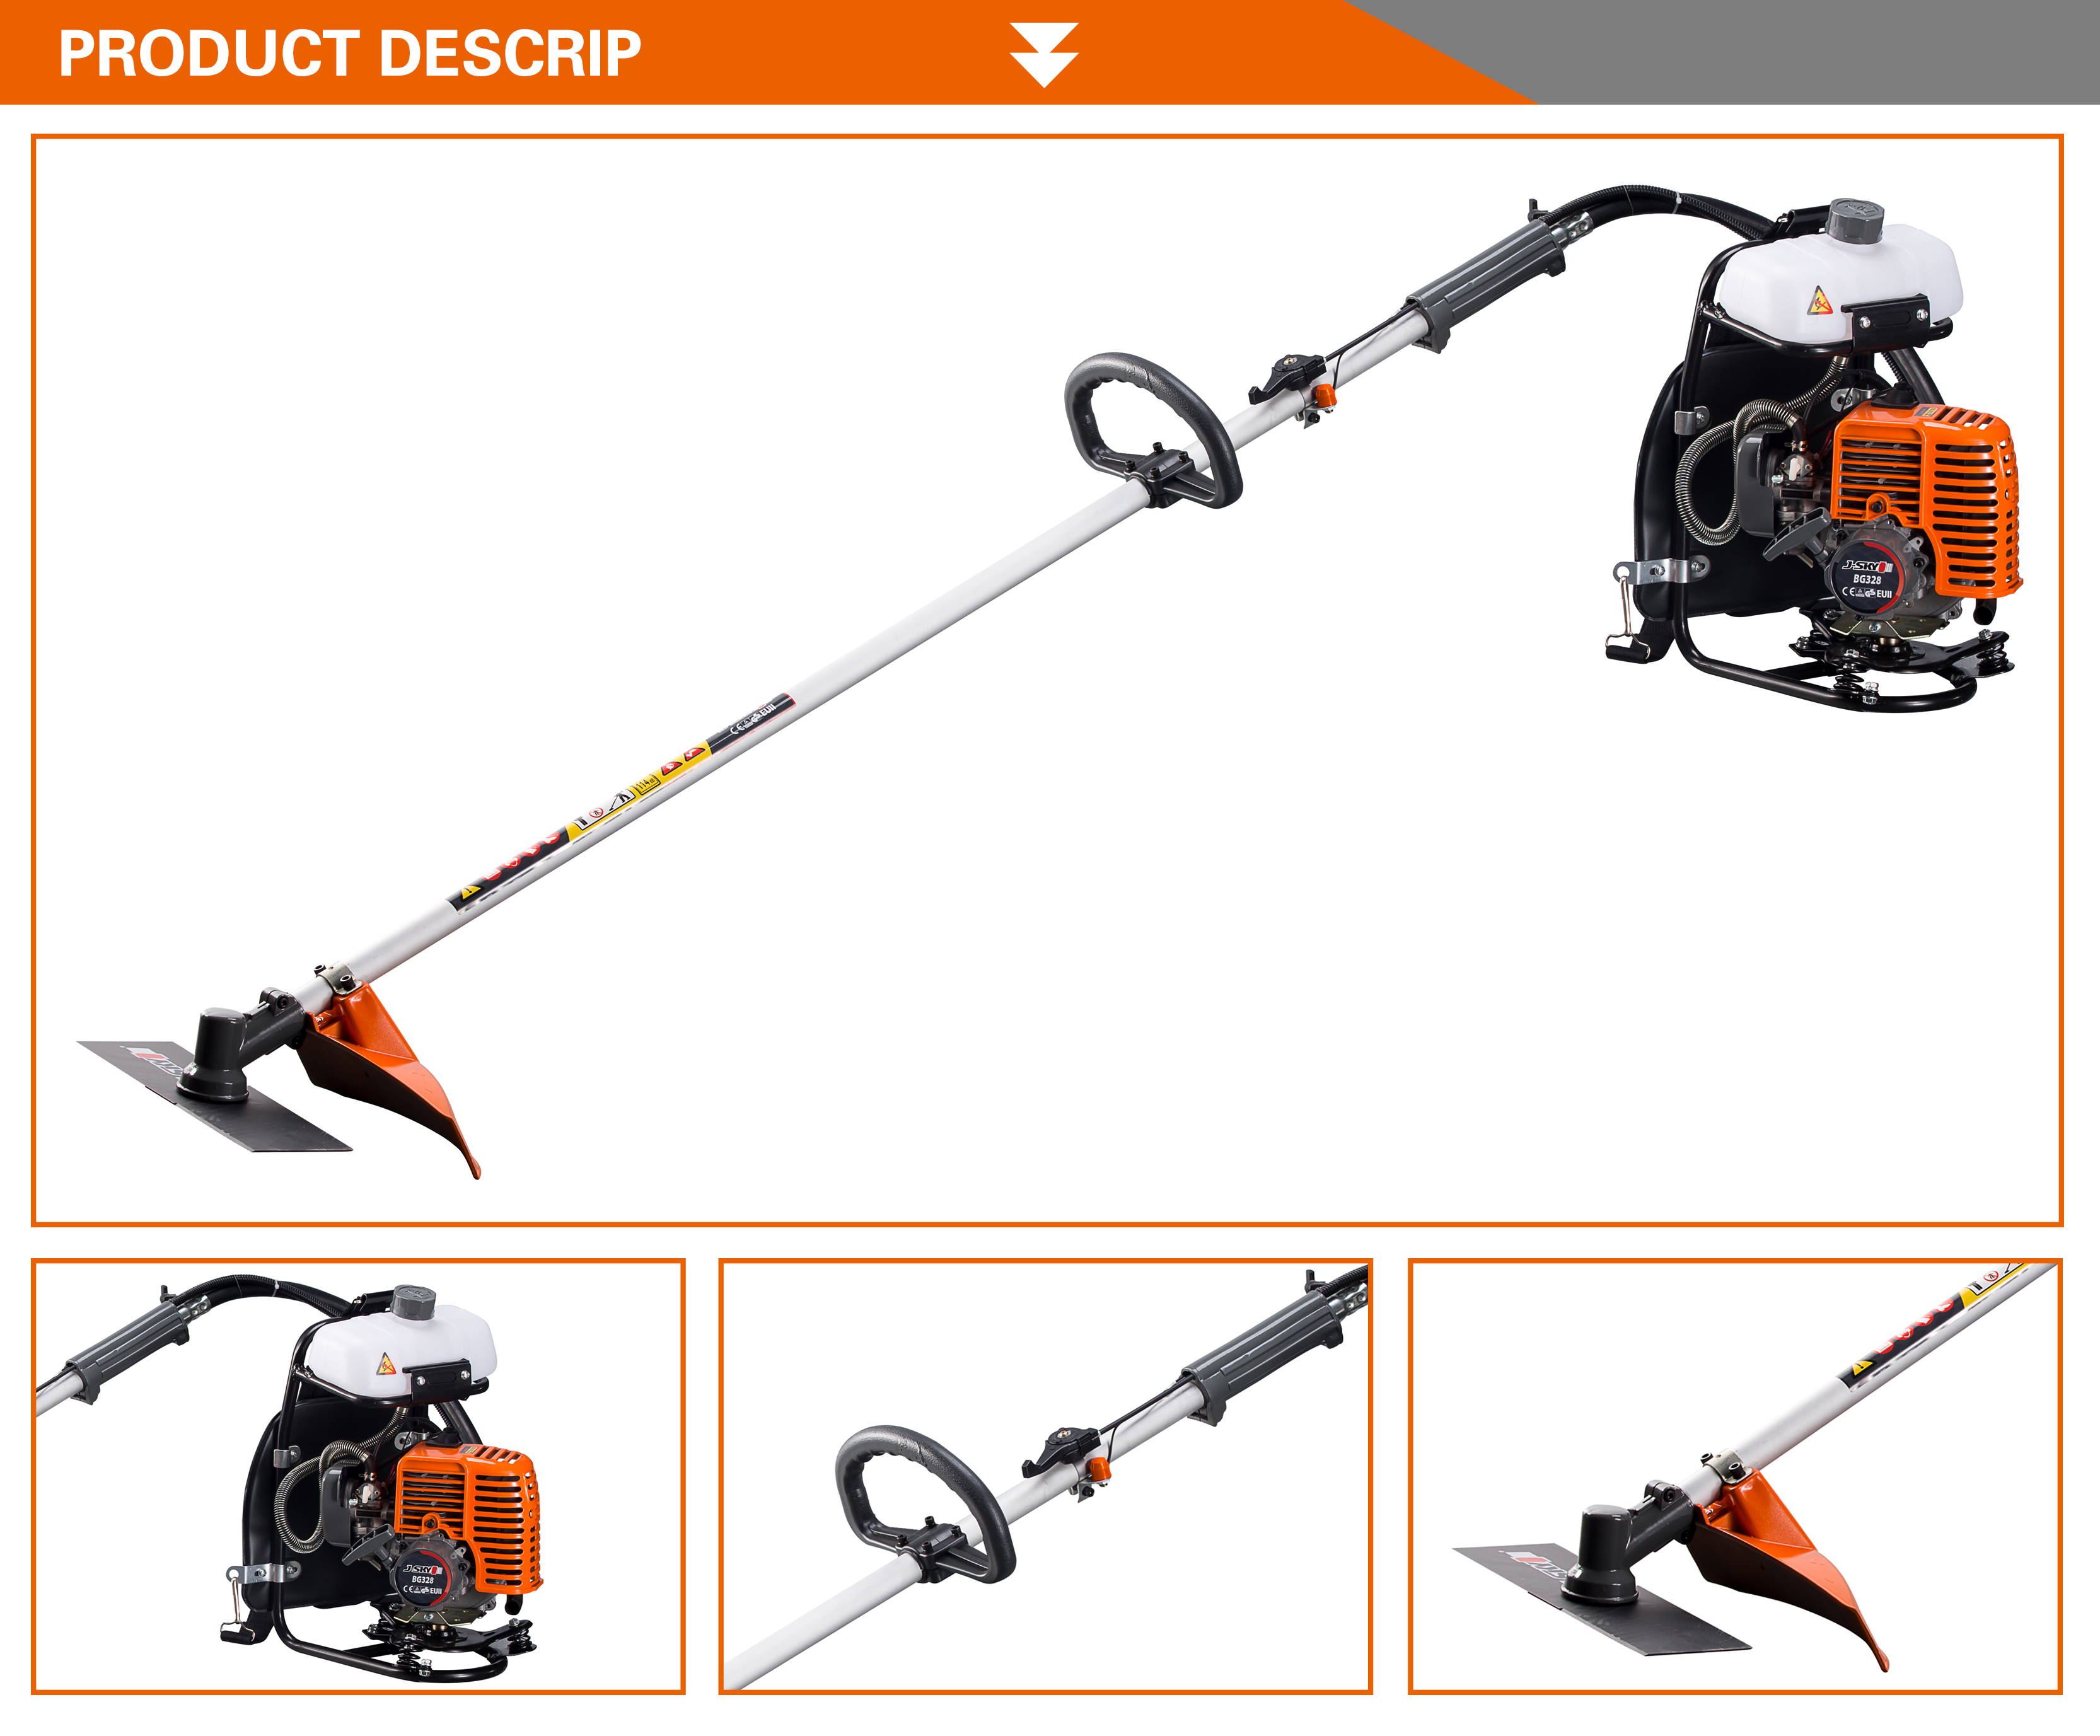 BG328 Brush Cutter